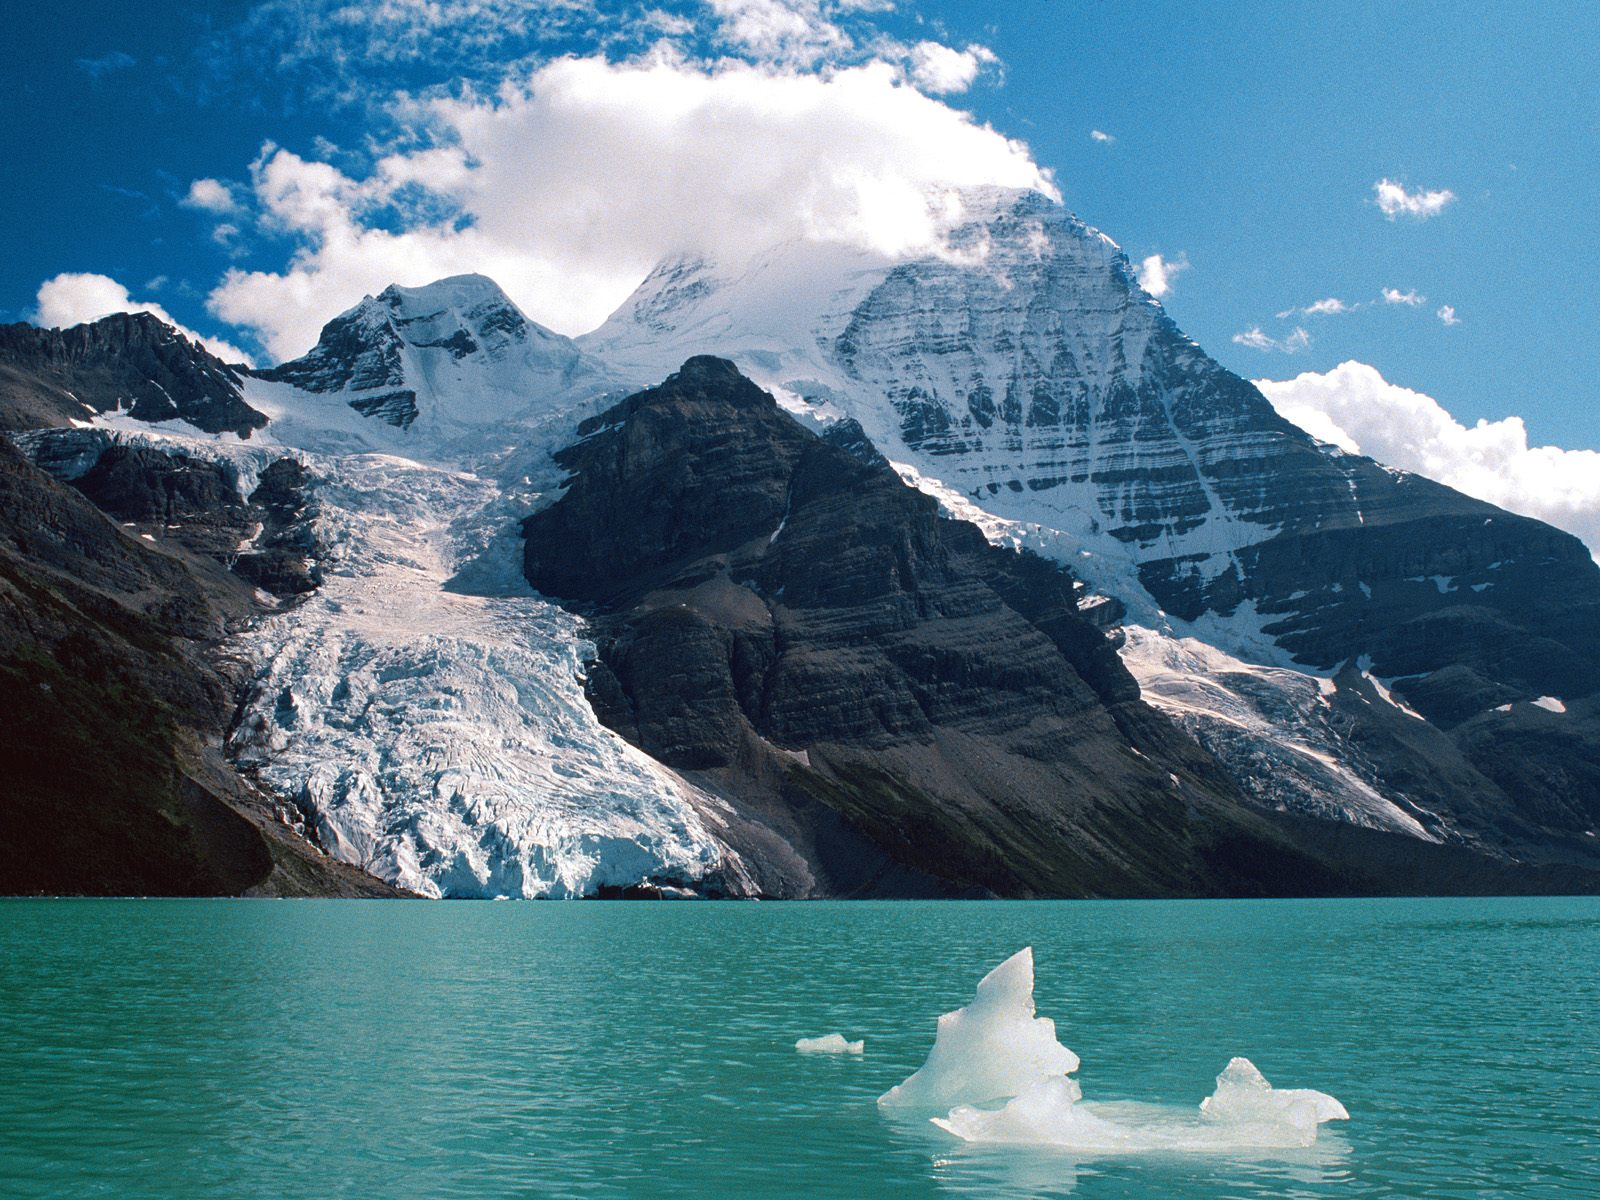 Beauty of Nature The Canadian Rockies